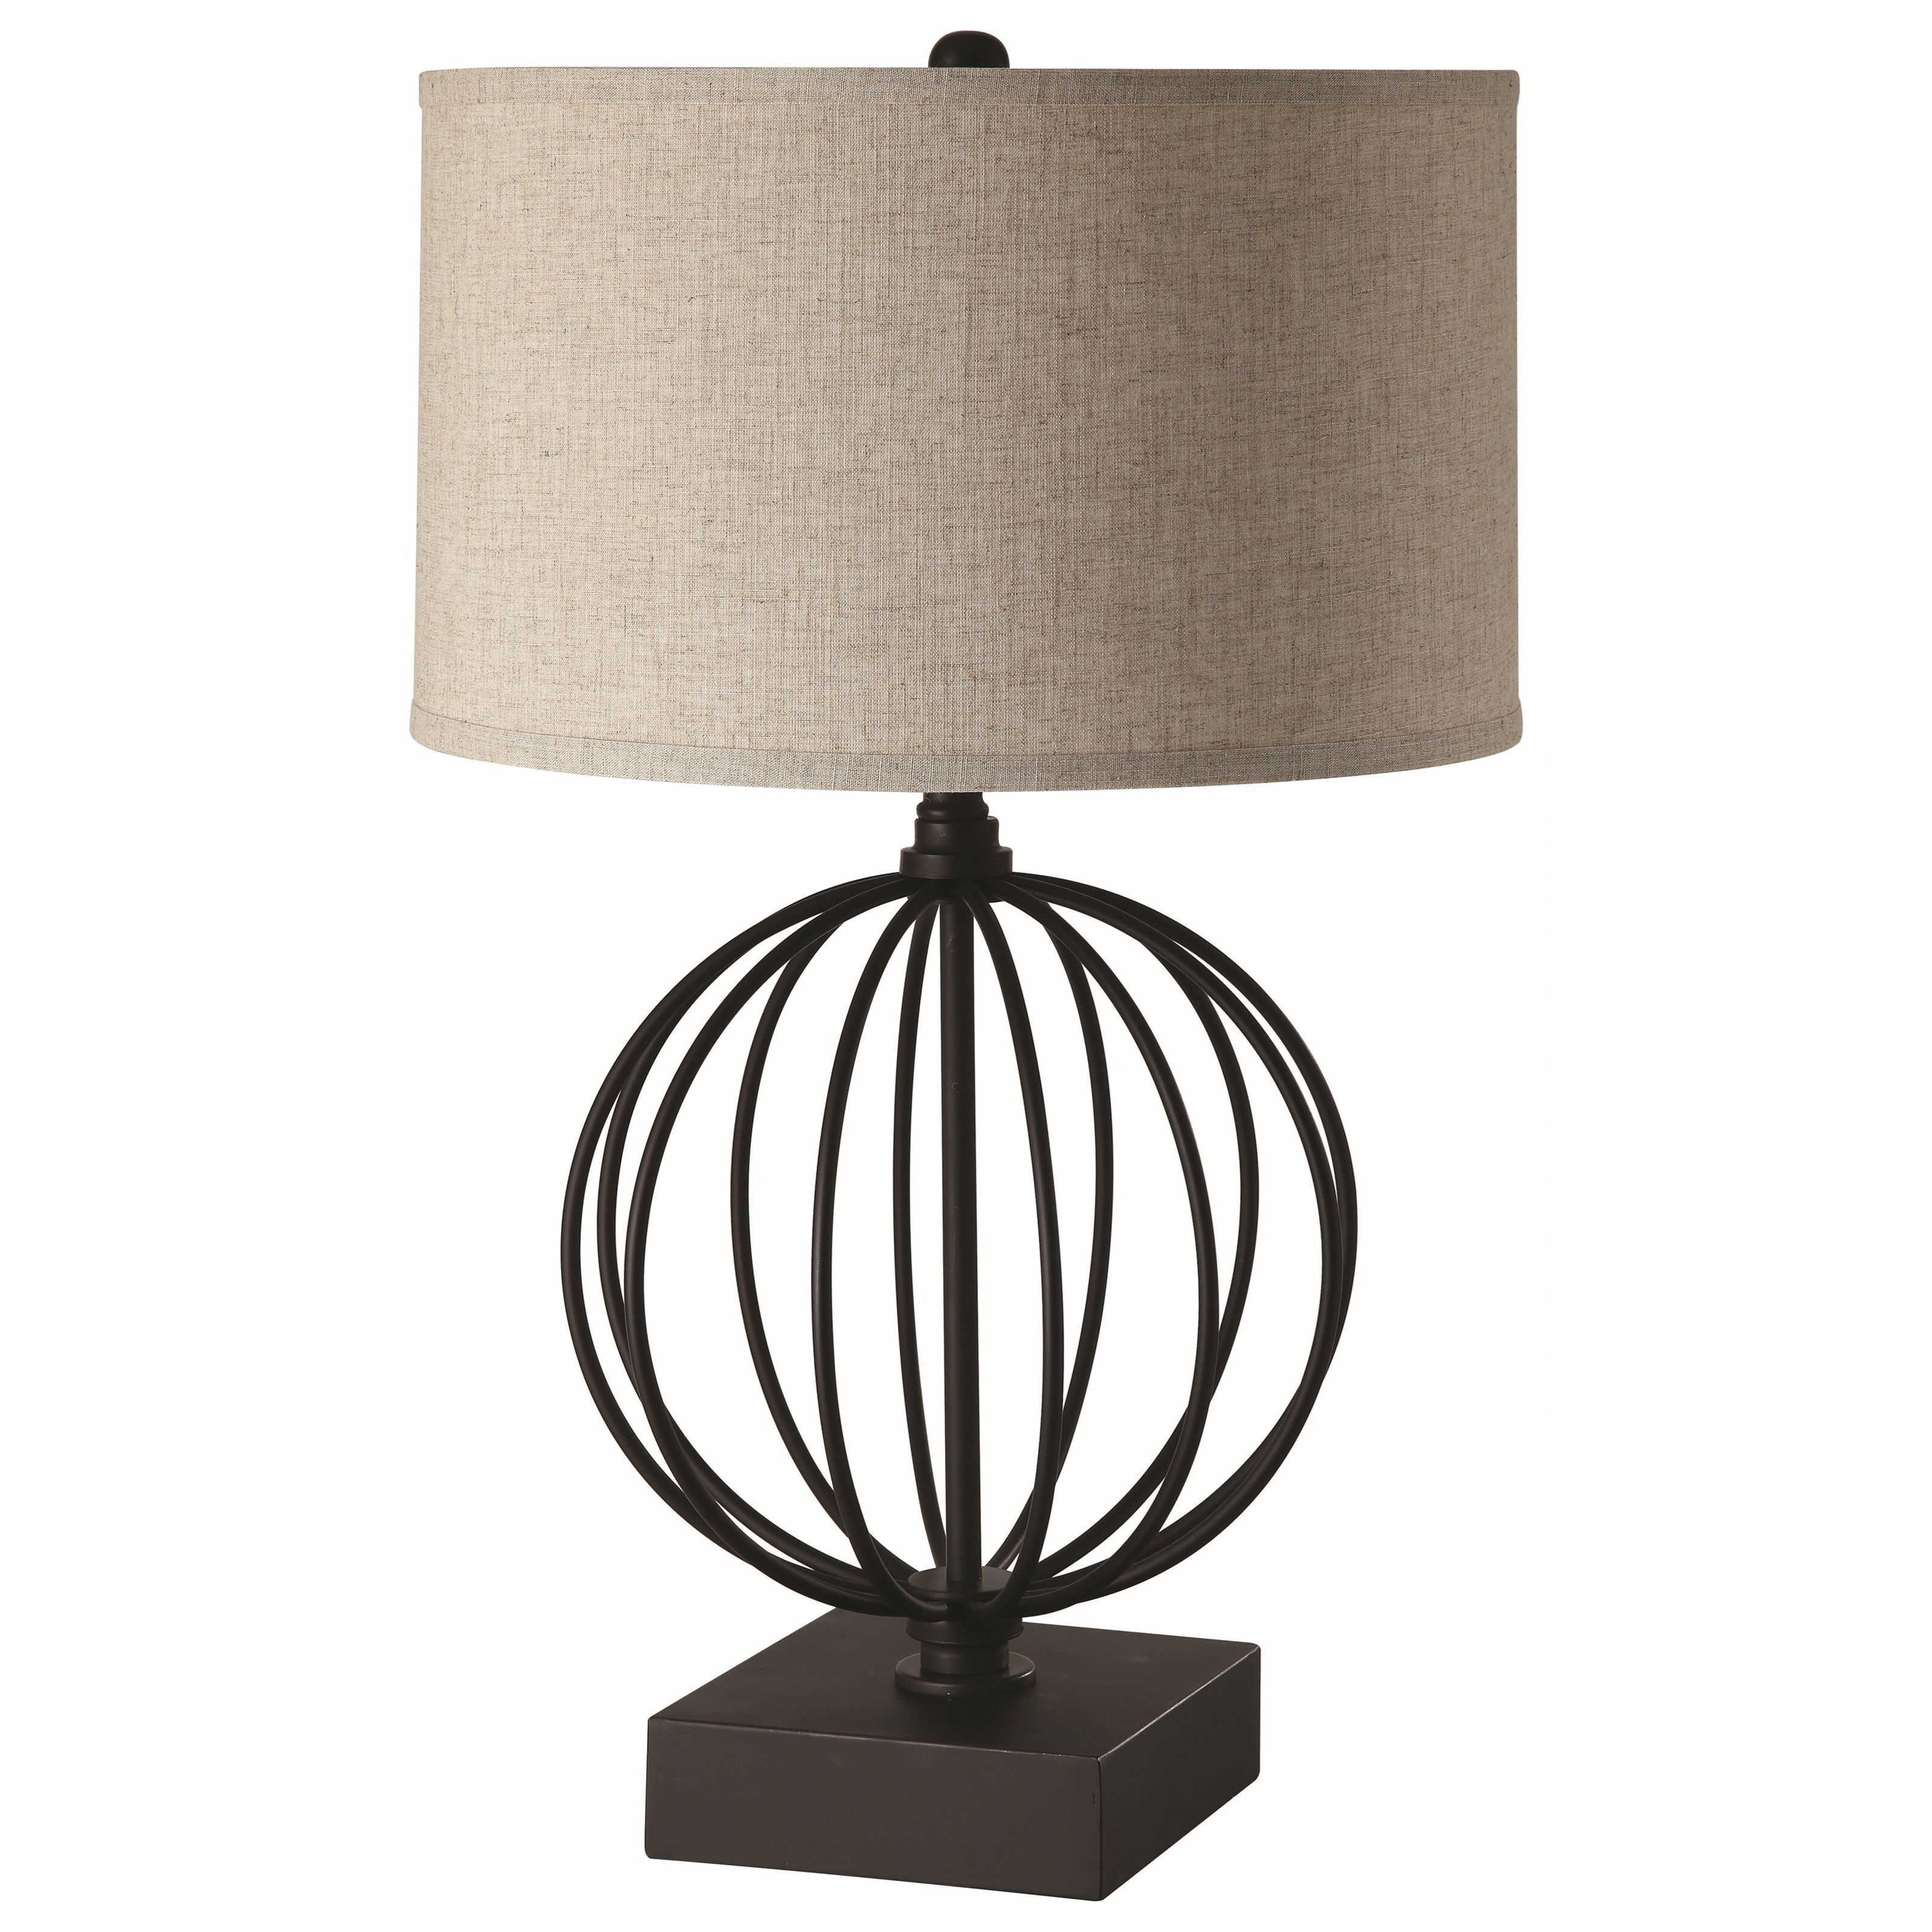 Coaster Table Lamps Table Lamp - Item Number: 902966